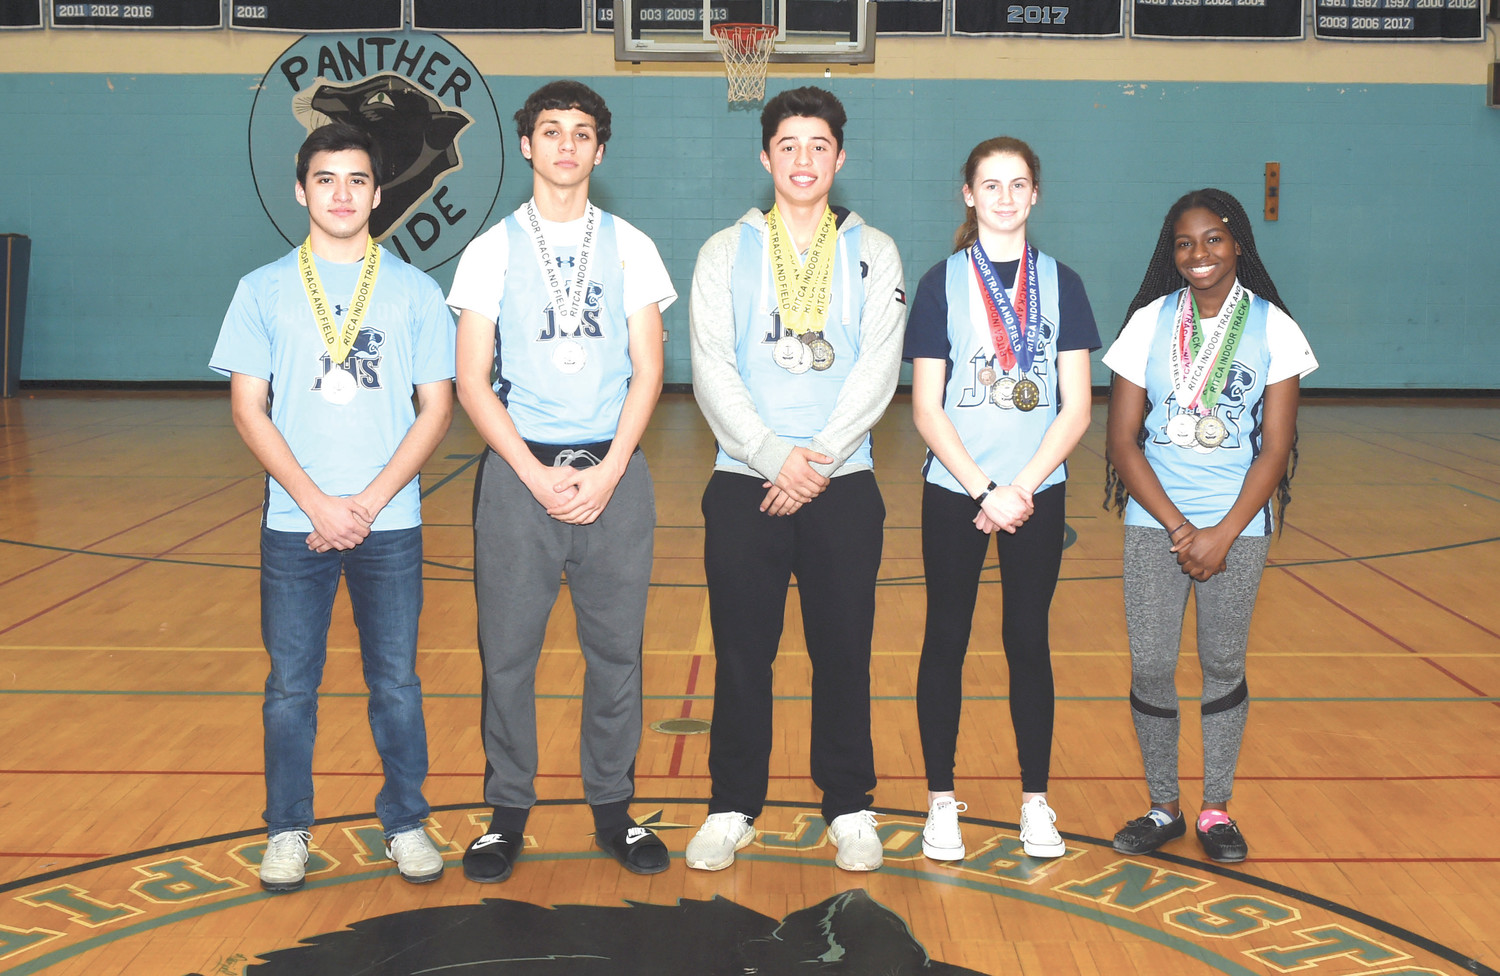 PROLIFIC PANTHERS: Those Johnston High students who won individual medals during the indoor track and field season are, from left: Carlos Fragoso, Sean Young, Frank Heredia, Brynn Roche and Lala Olagundoye. (Submitted photo)